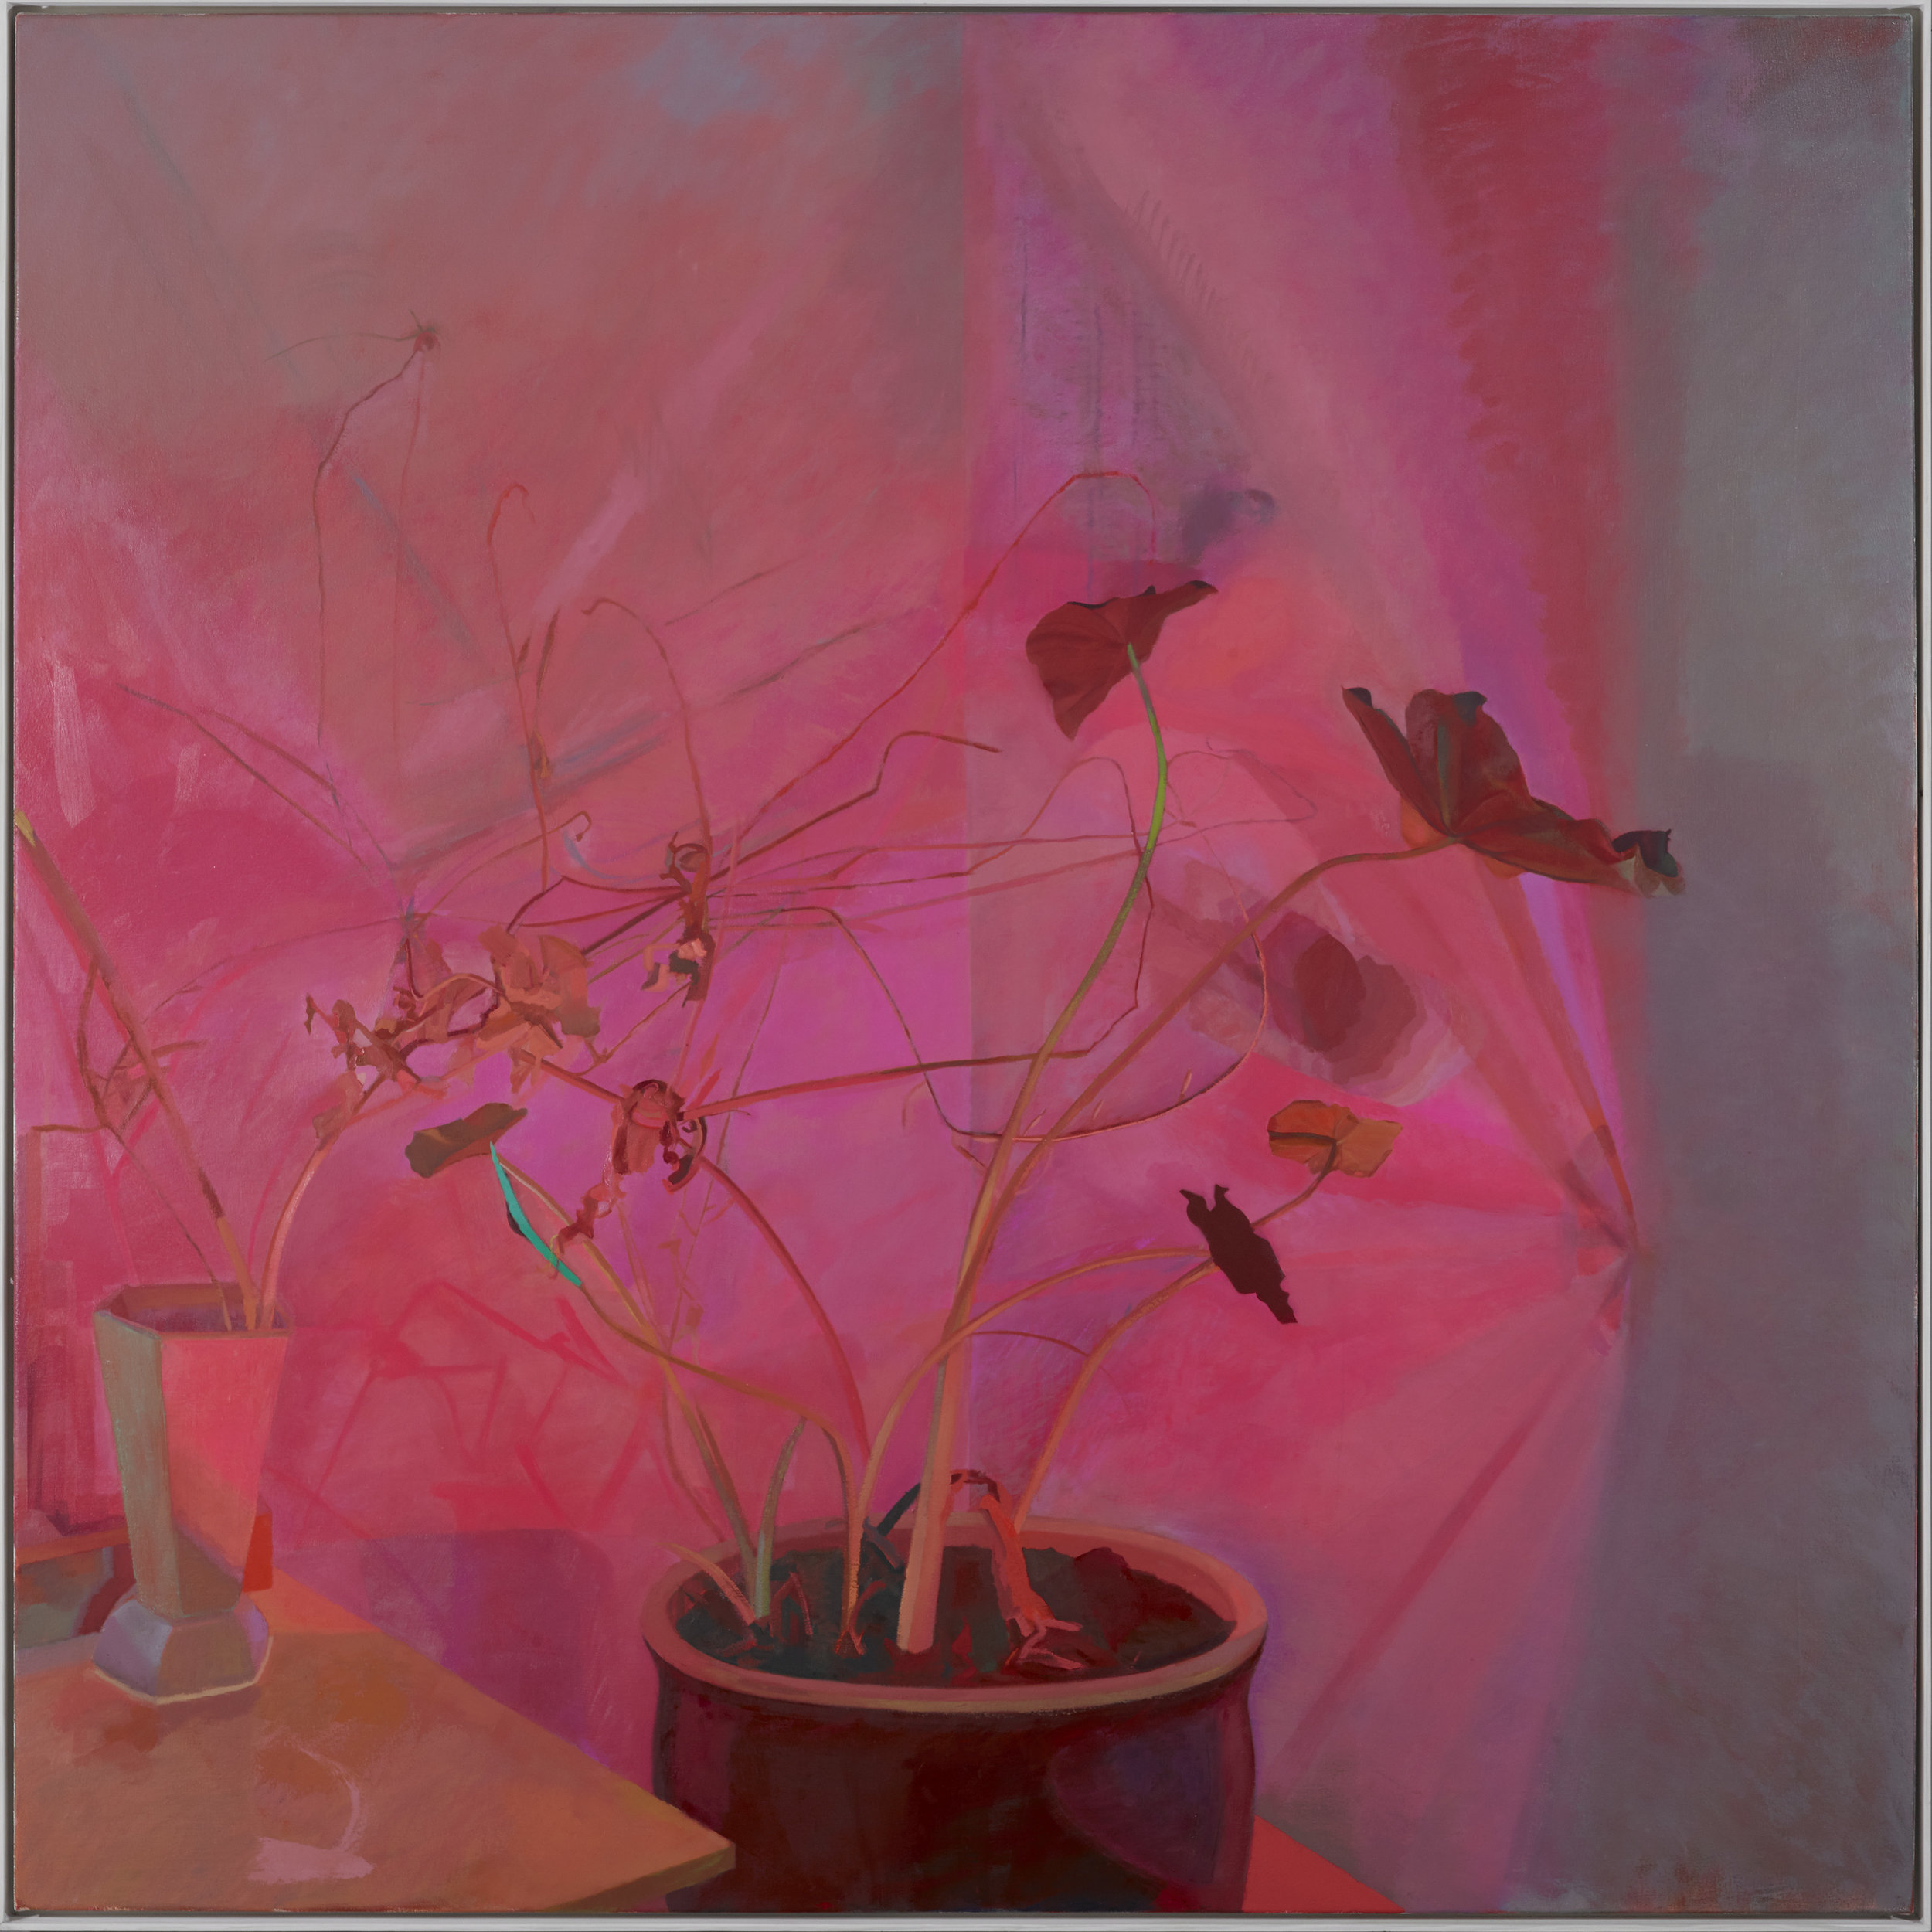 Red Light, Elephant Ear and Bolted Cabbage   2019  oil on canvas  60x60 inches